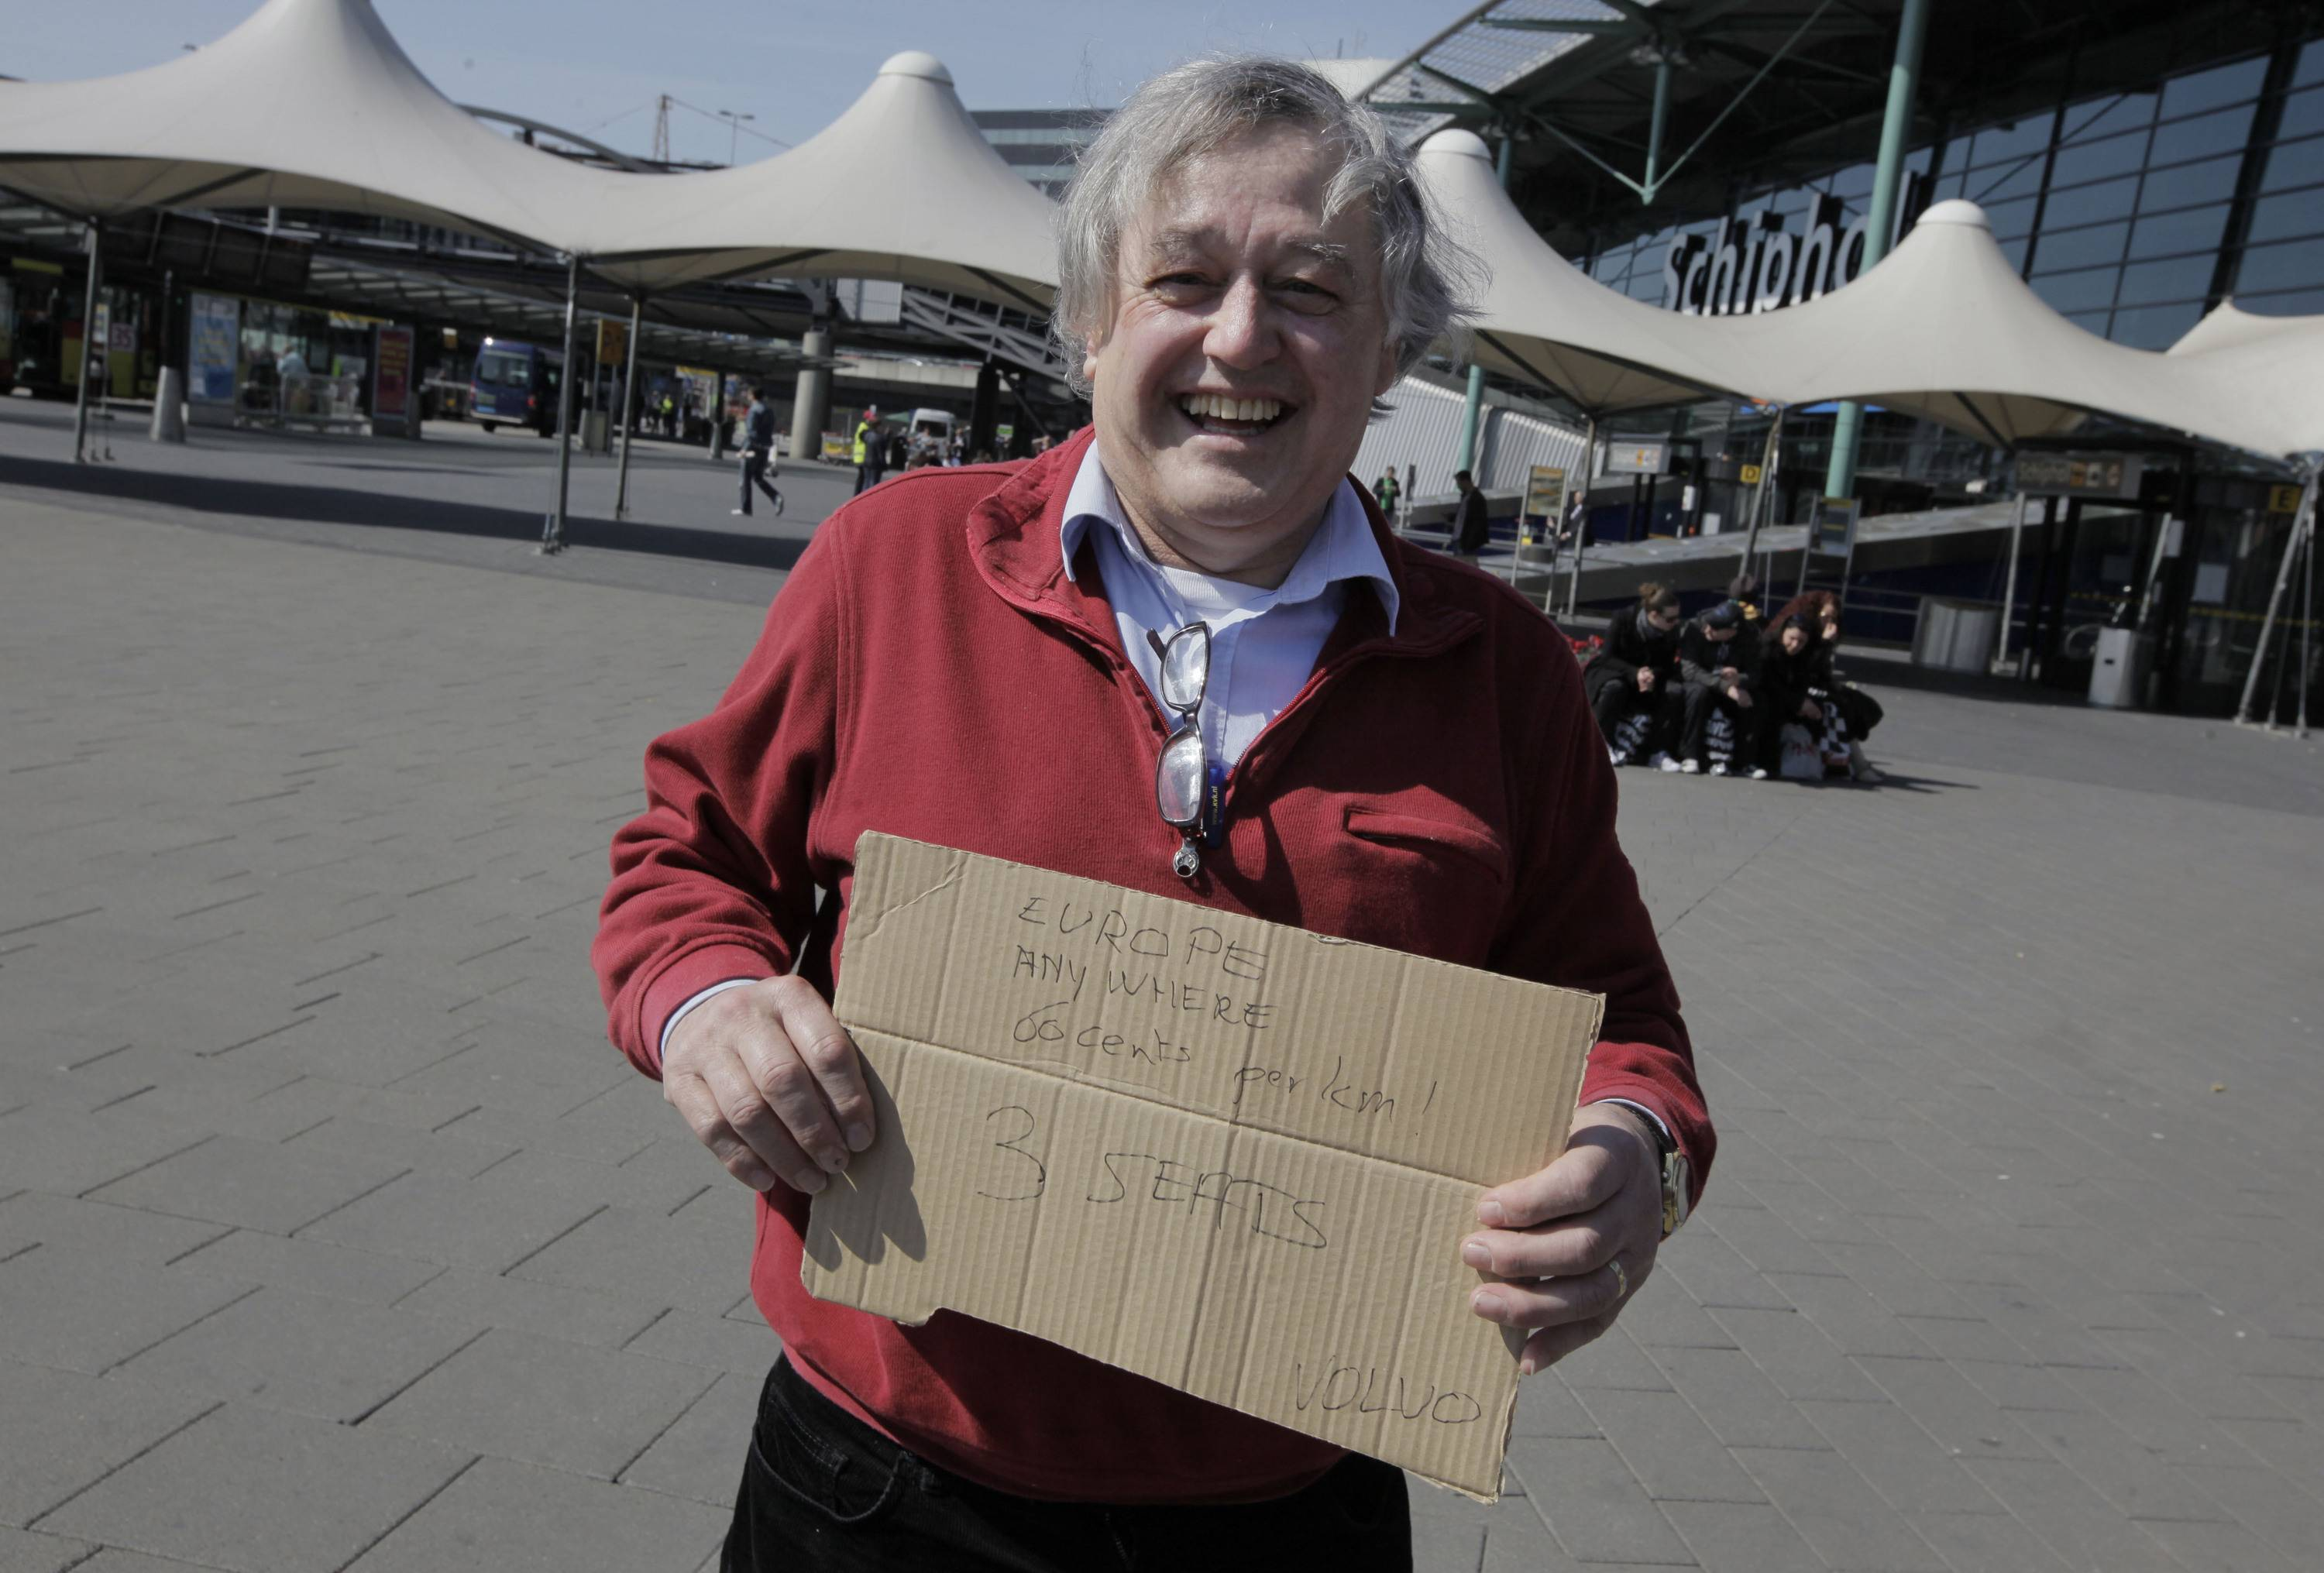 A man holds a sign offering to drive stranded travelers to any location in Europe for 0.60 euros per kilometer at Schiphol Airport, Amsterdam.